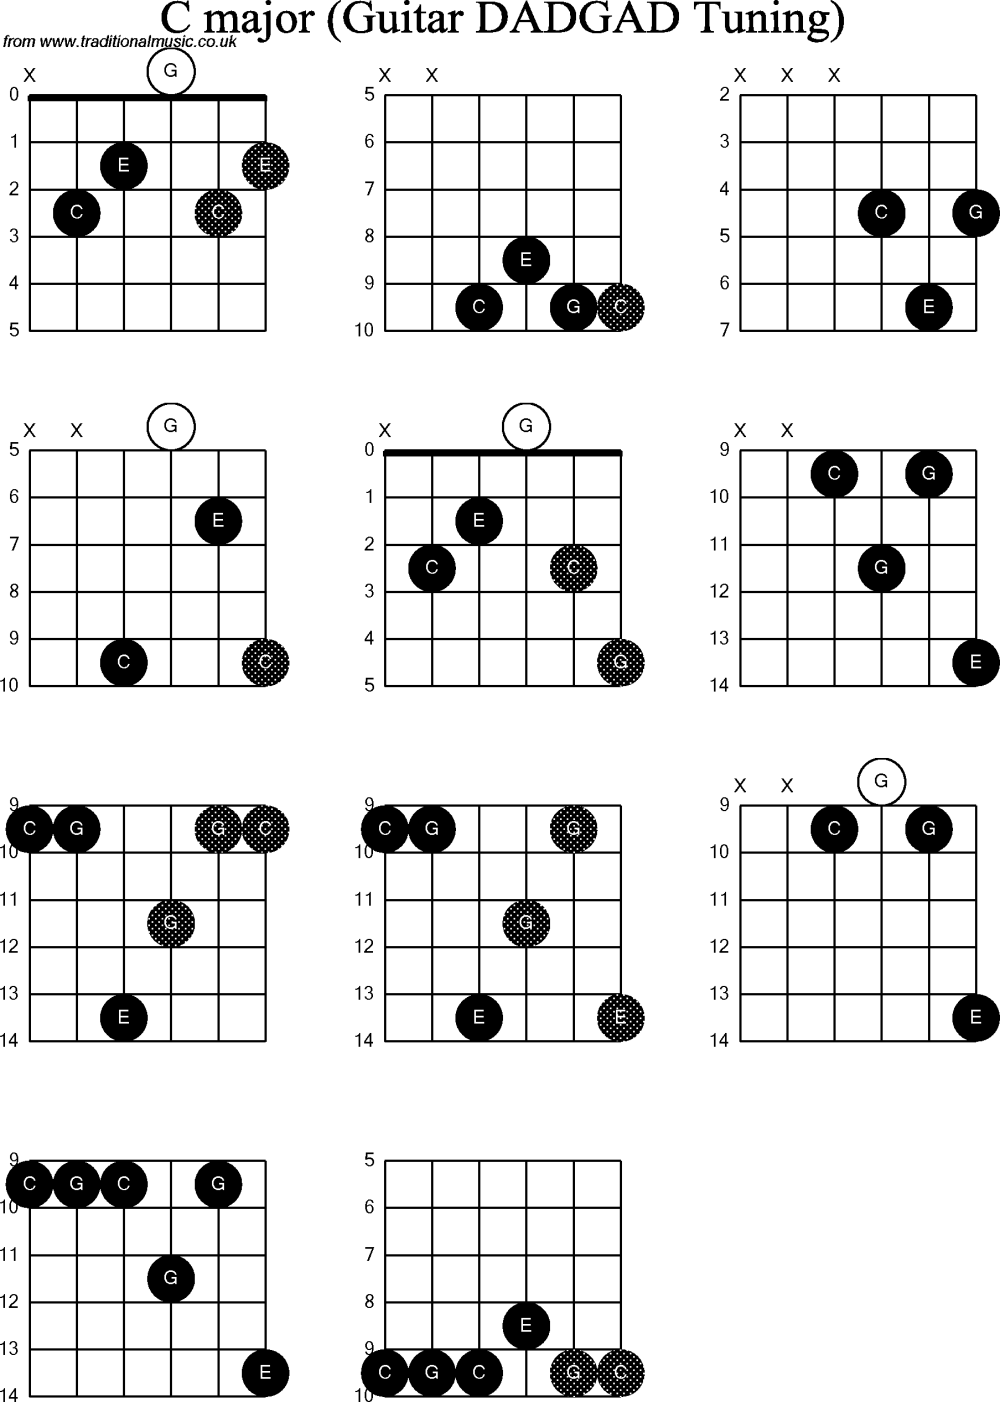 medium resolution of chord diagrams d modal guitar dadgad c mix chord diagrams for d modal guitar